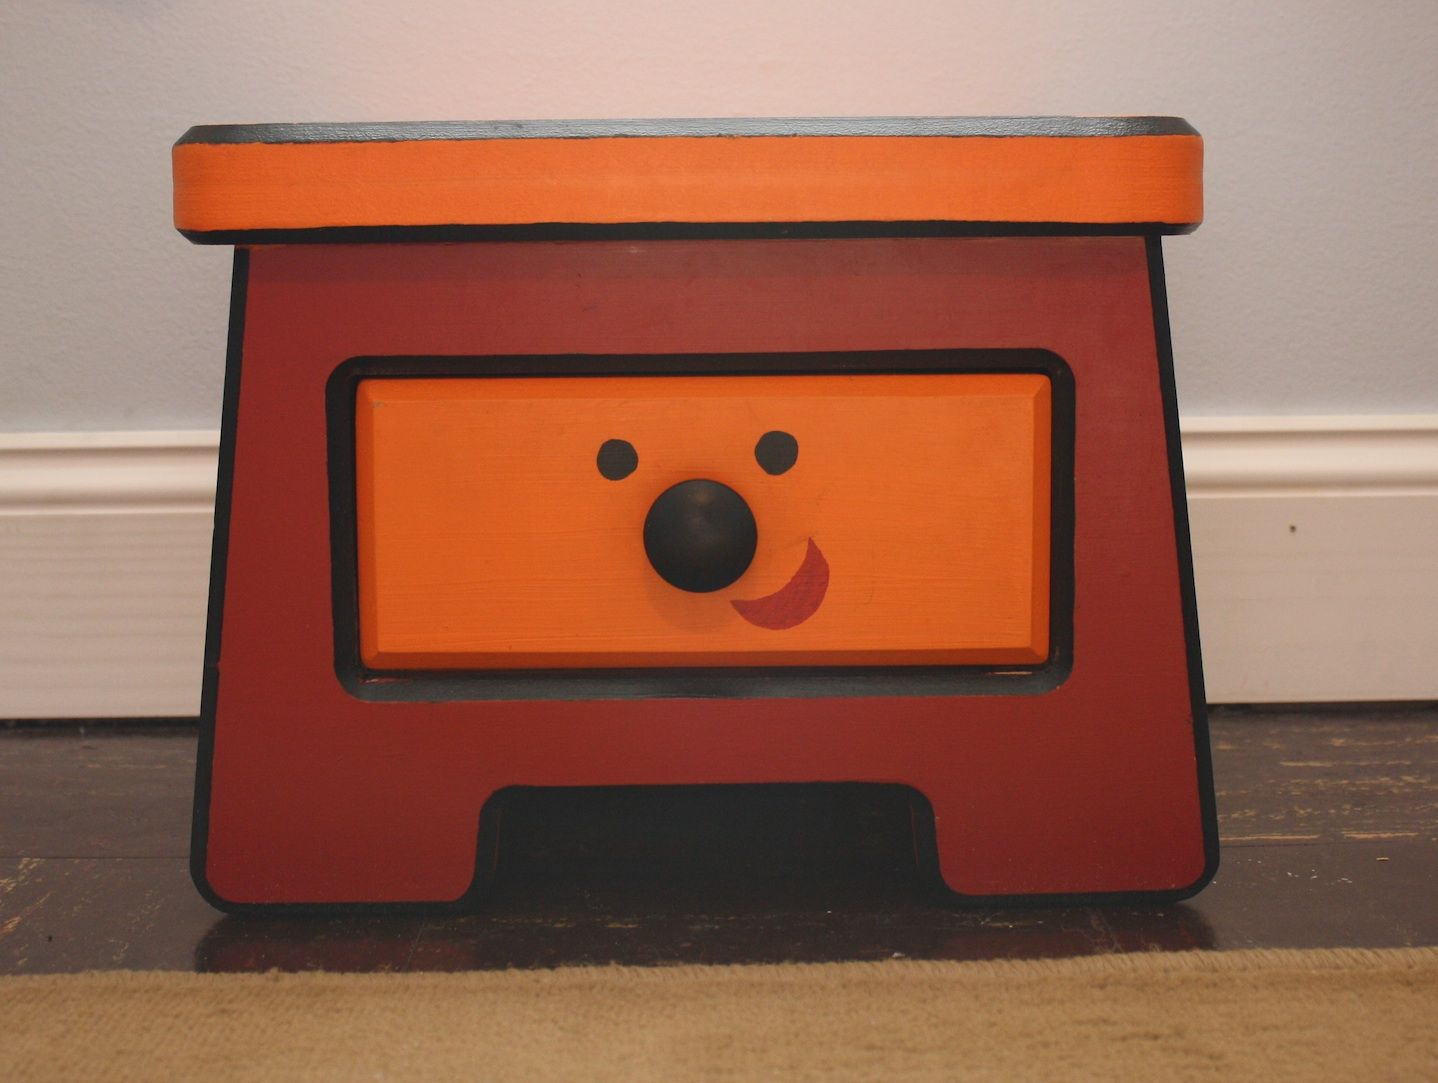 Blues clues thinking chair -  We Loved Side Table Drawer From Blue S Clues So Much We Made A Life Size Replica Of Her Of Mdf And Paint For A Children S Room Yeah But Does It Sing Like